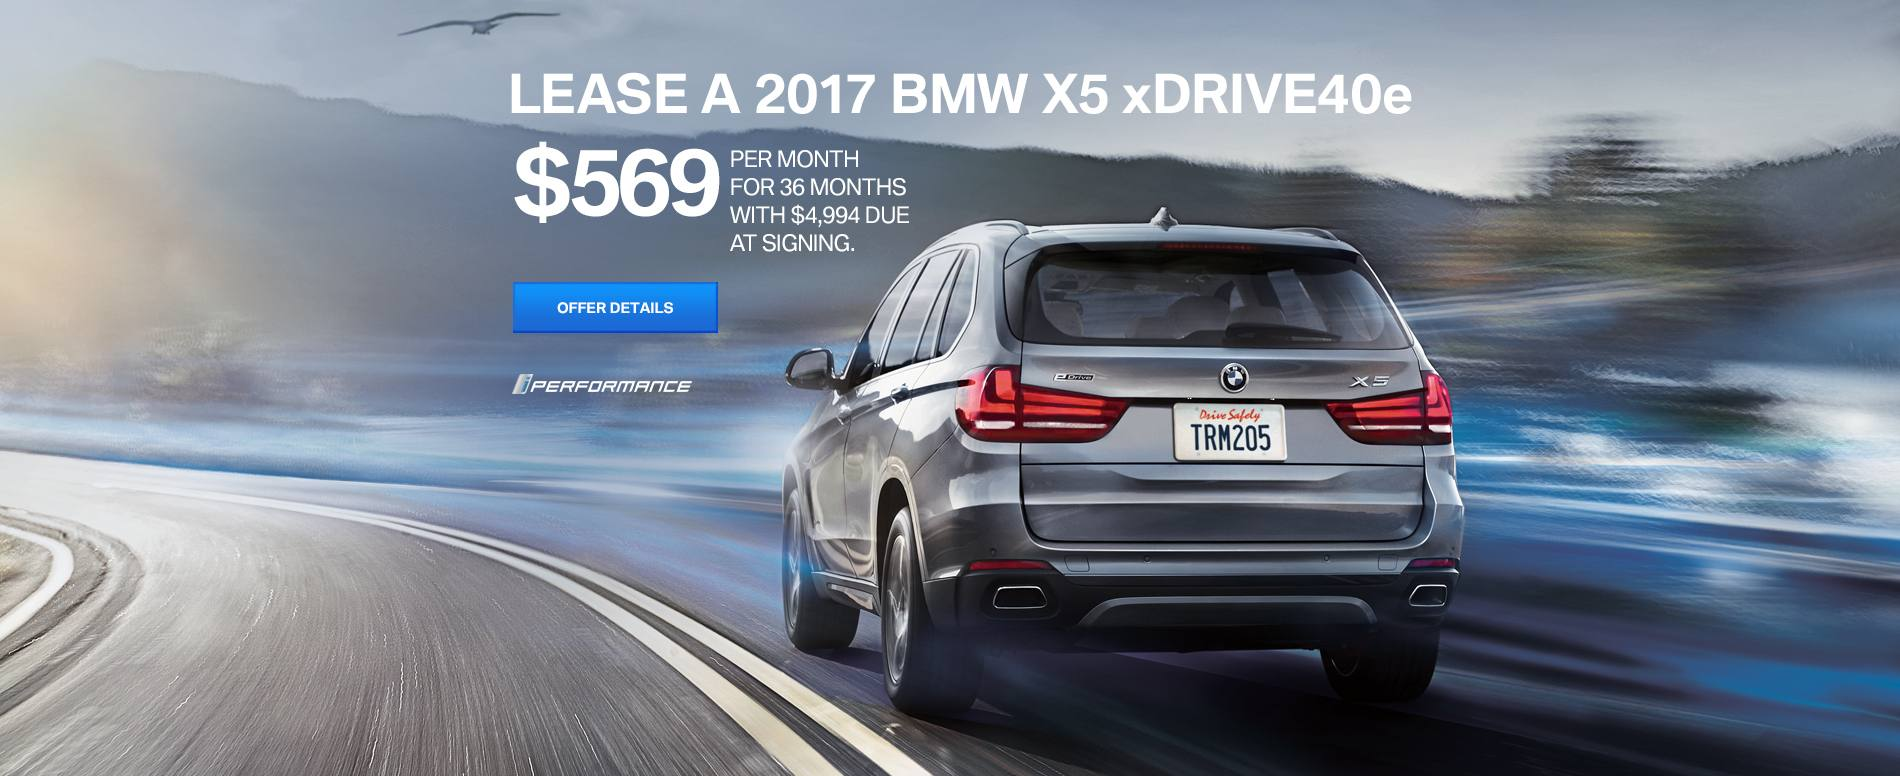 BMW Lease Deals  Specials  BMW of Darien